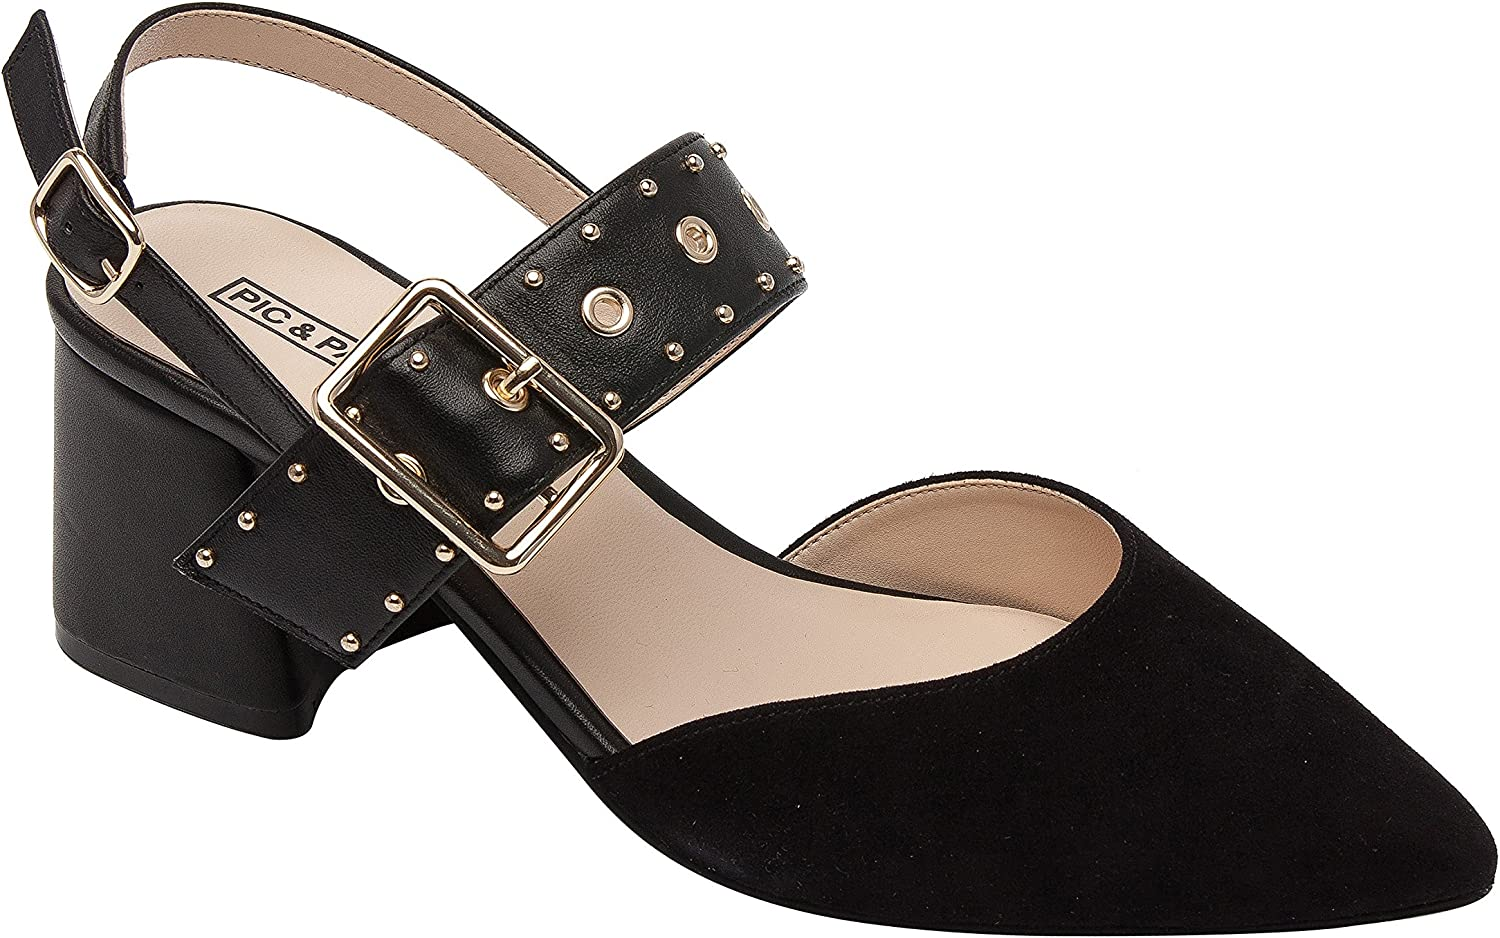 Pic & Pay Naiya   Women's Mid-Height Block Heel Studded Slingback Buckle Pump Black Suede Leather 7M